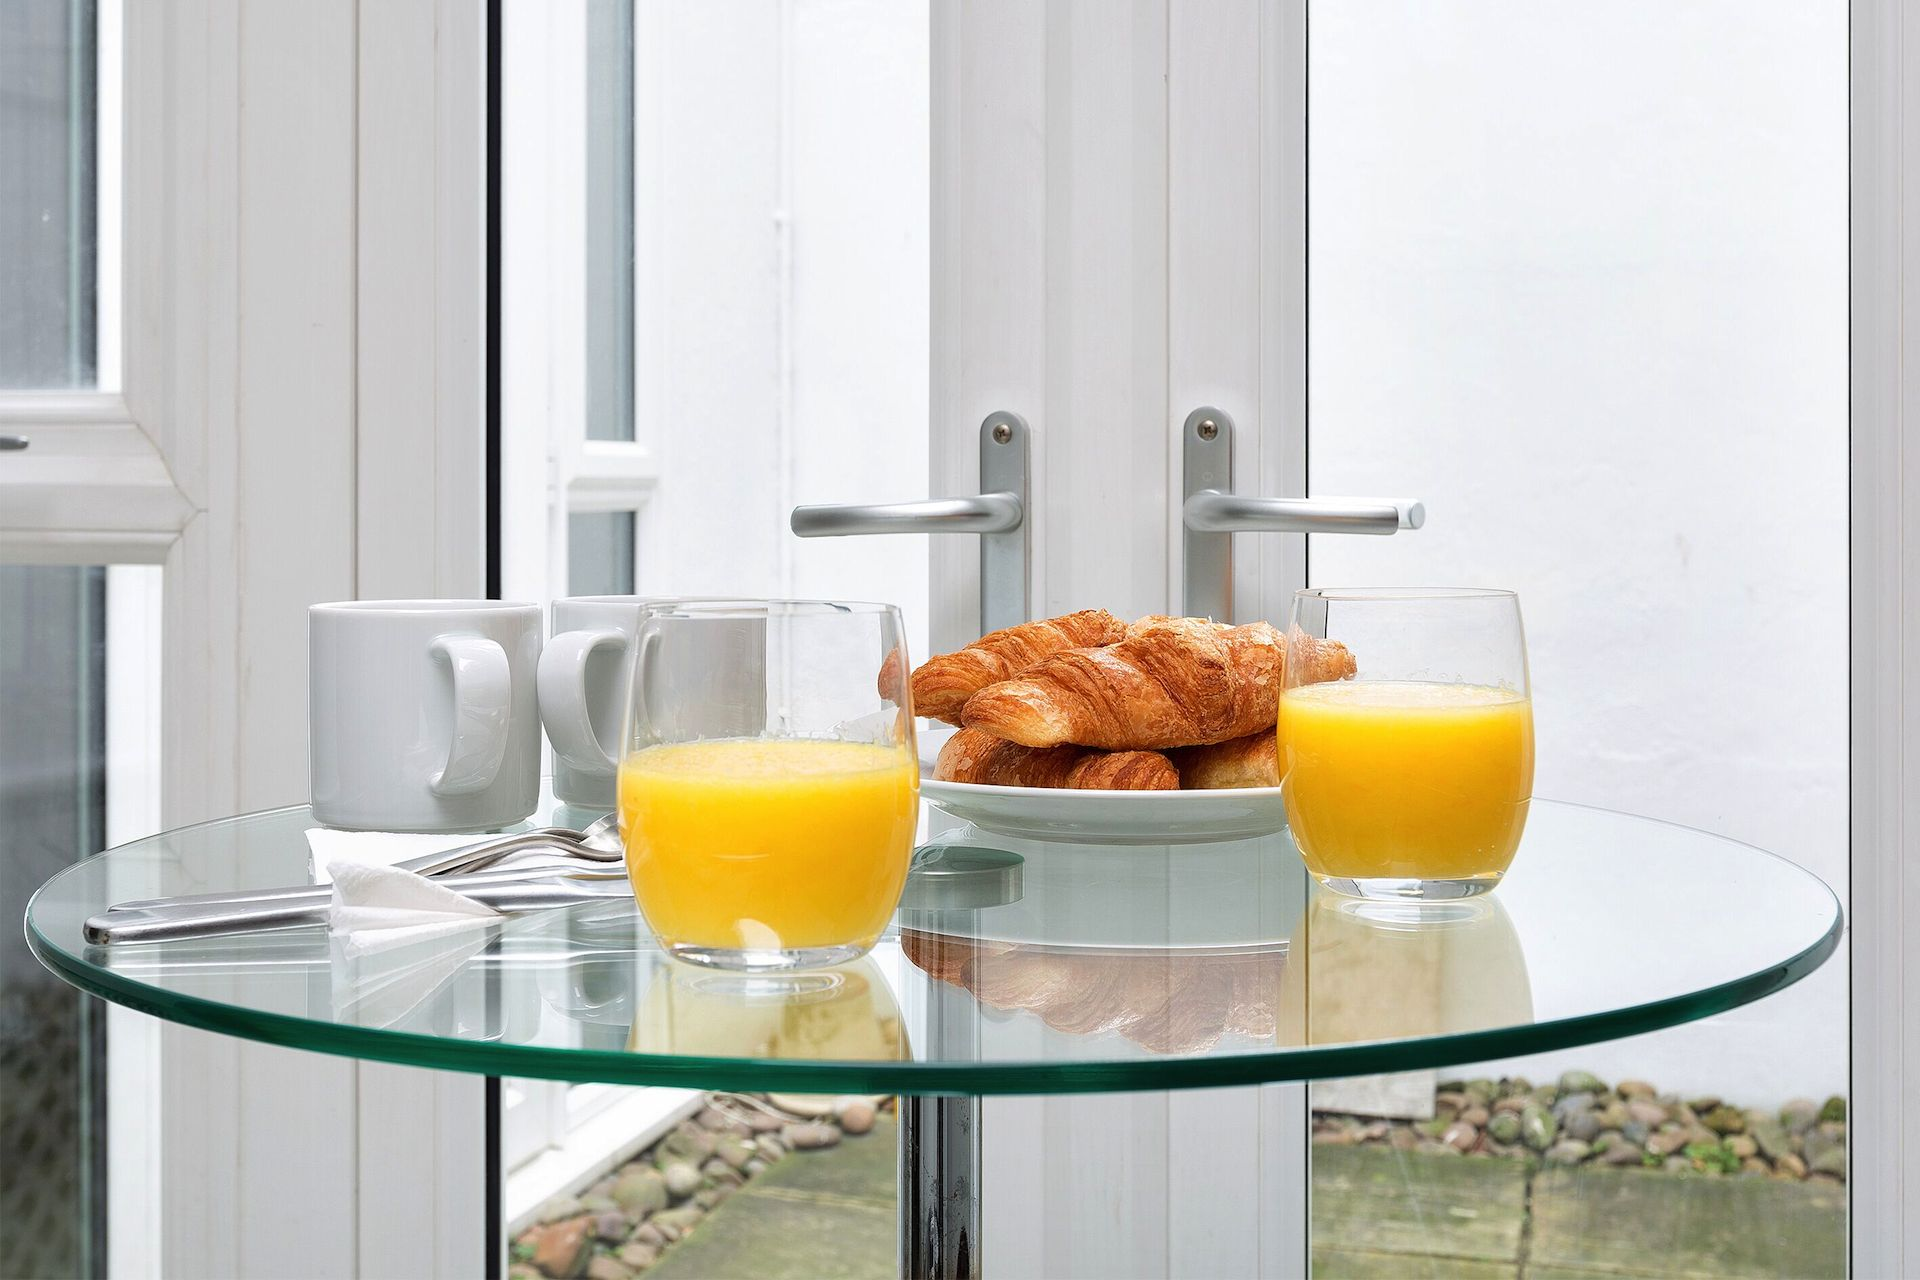 Dining table in the Coleherne vacation rental offered by London Perfect